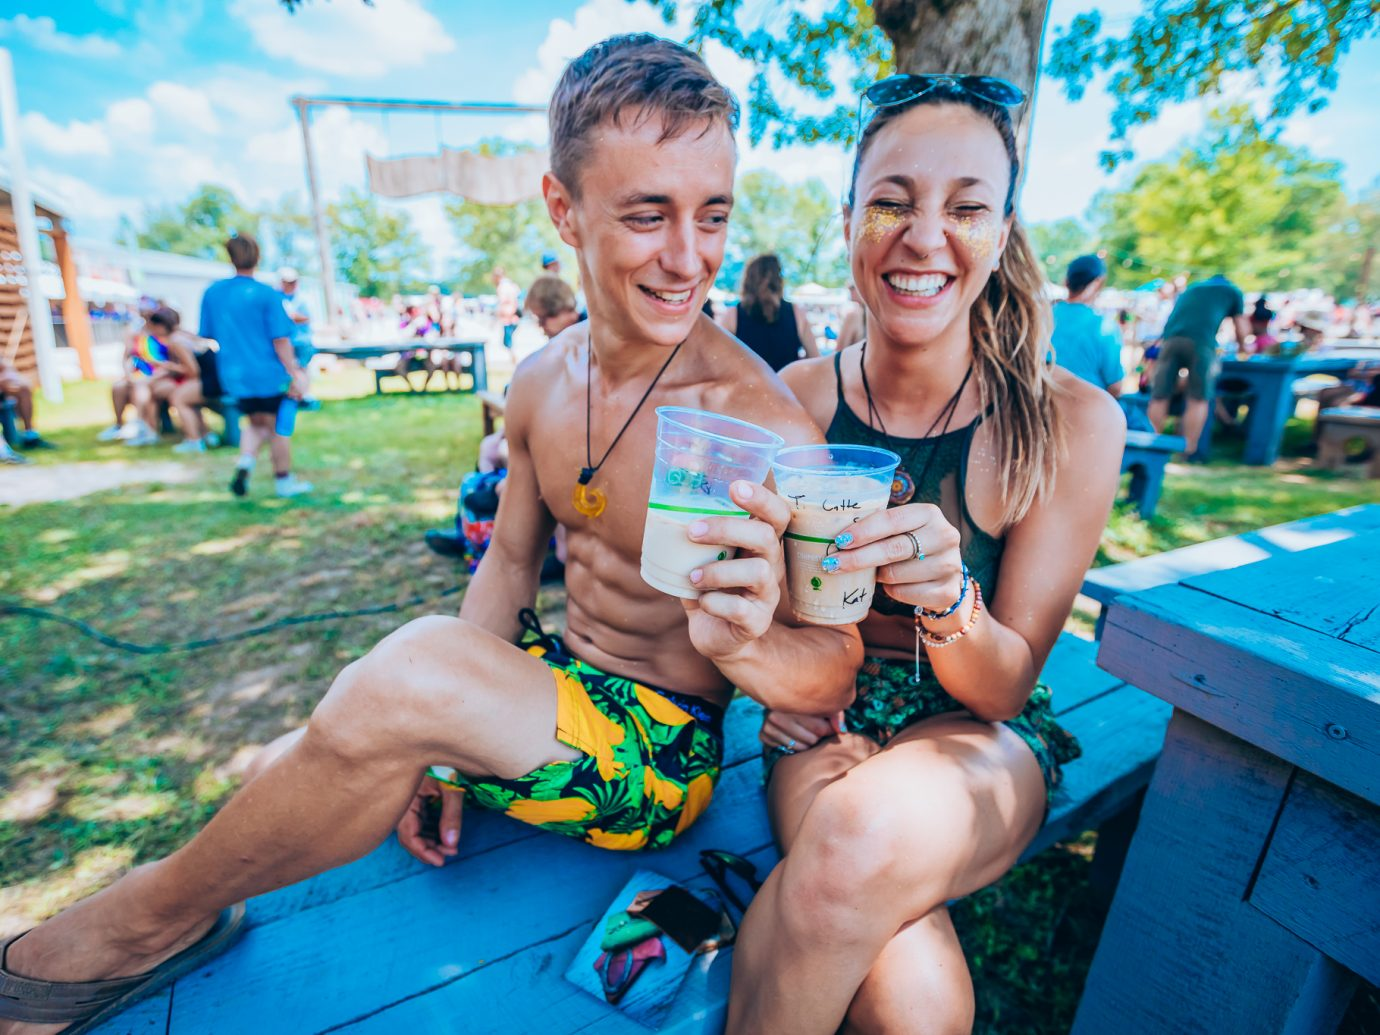 couple cheersing their drinks on a blue picnic table